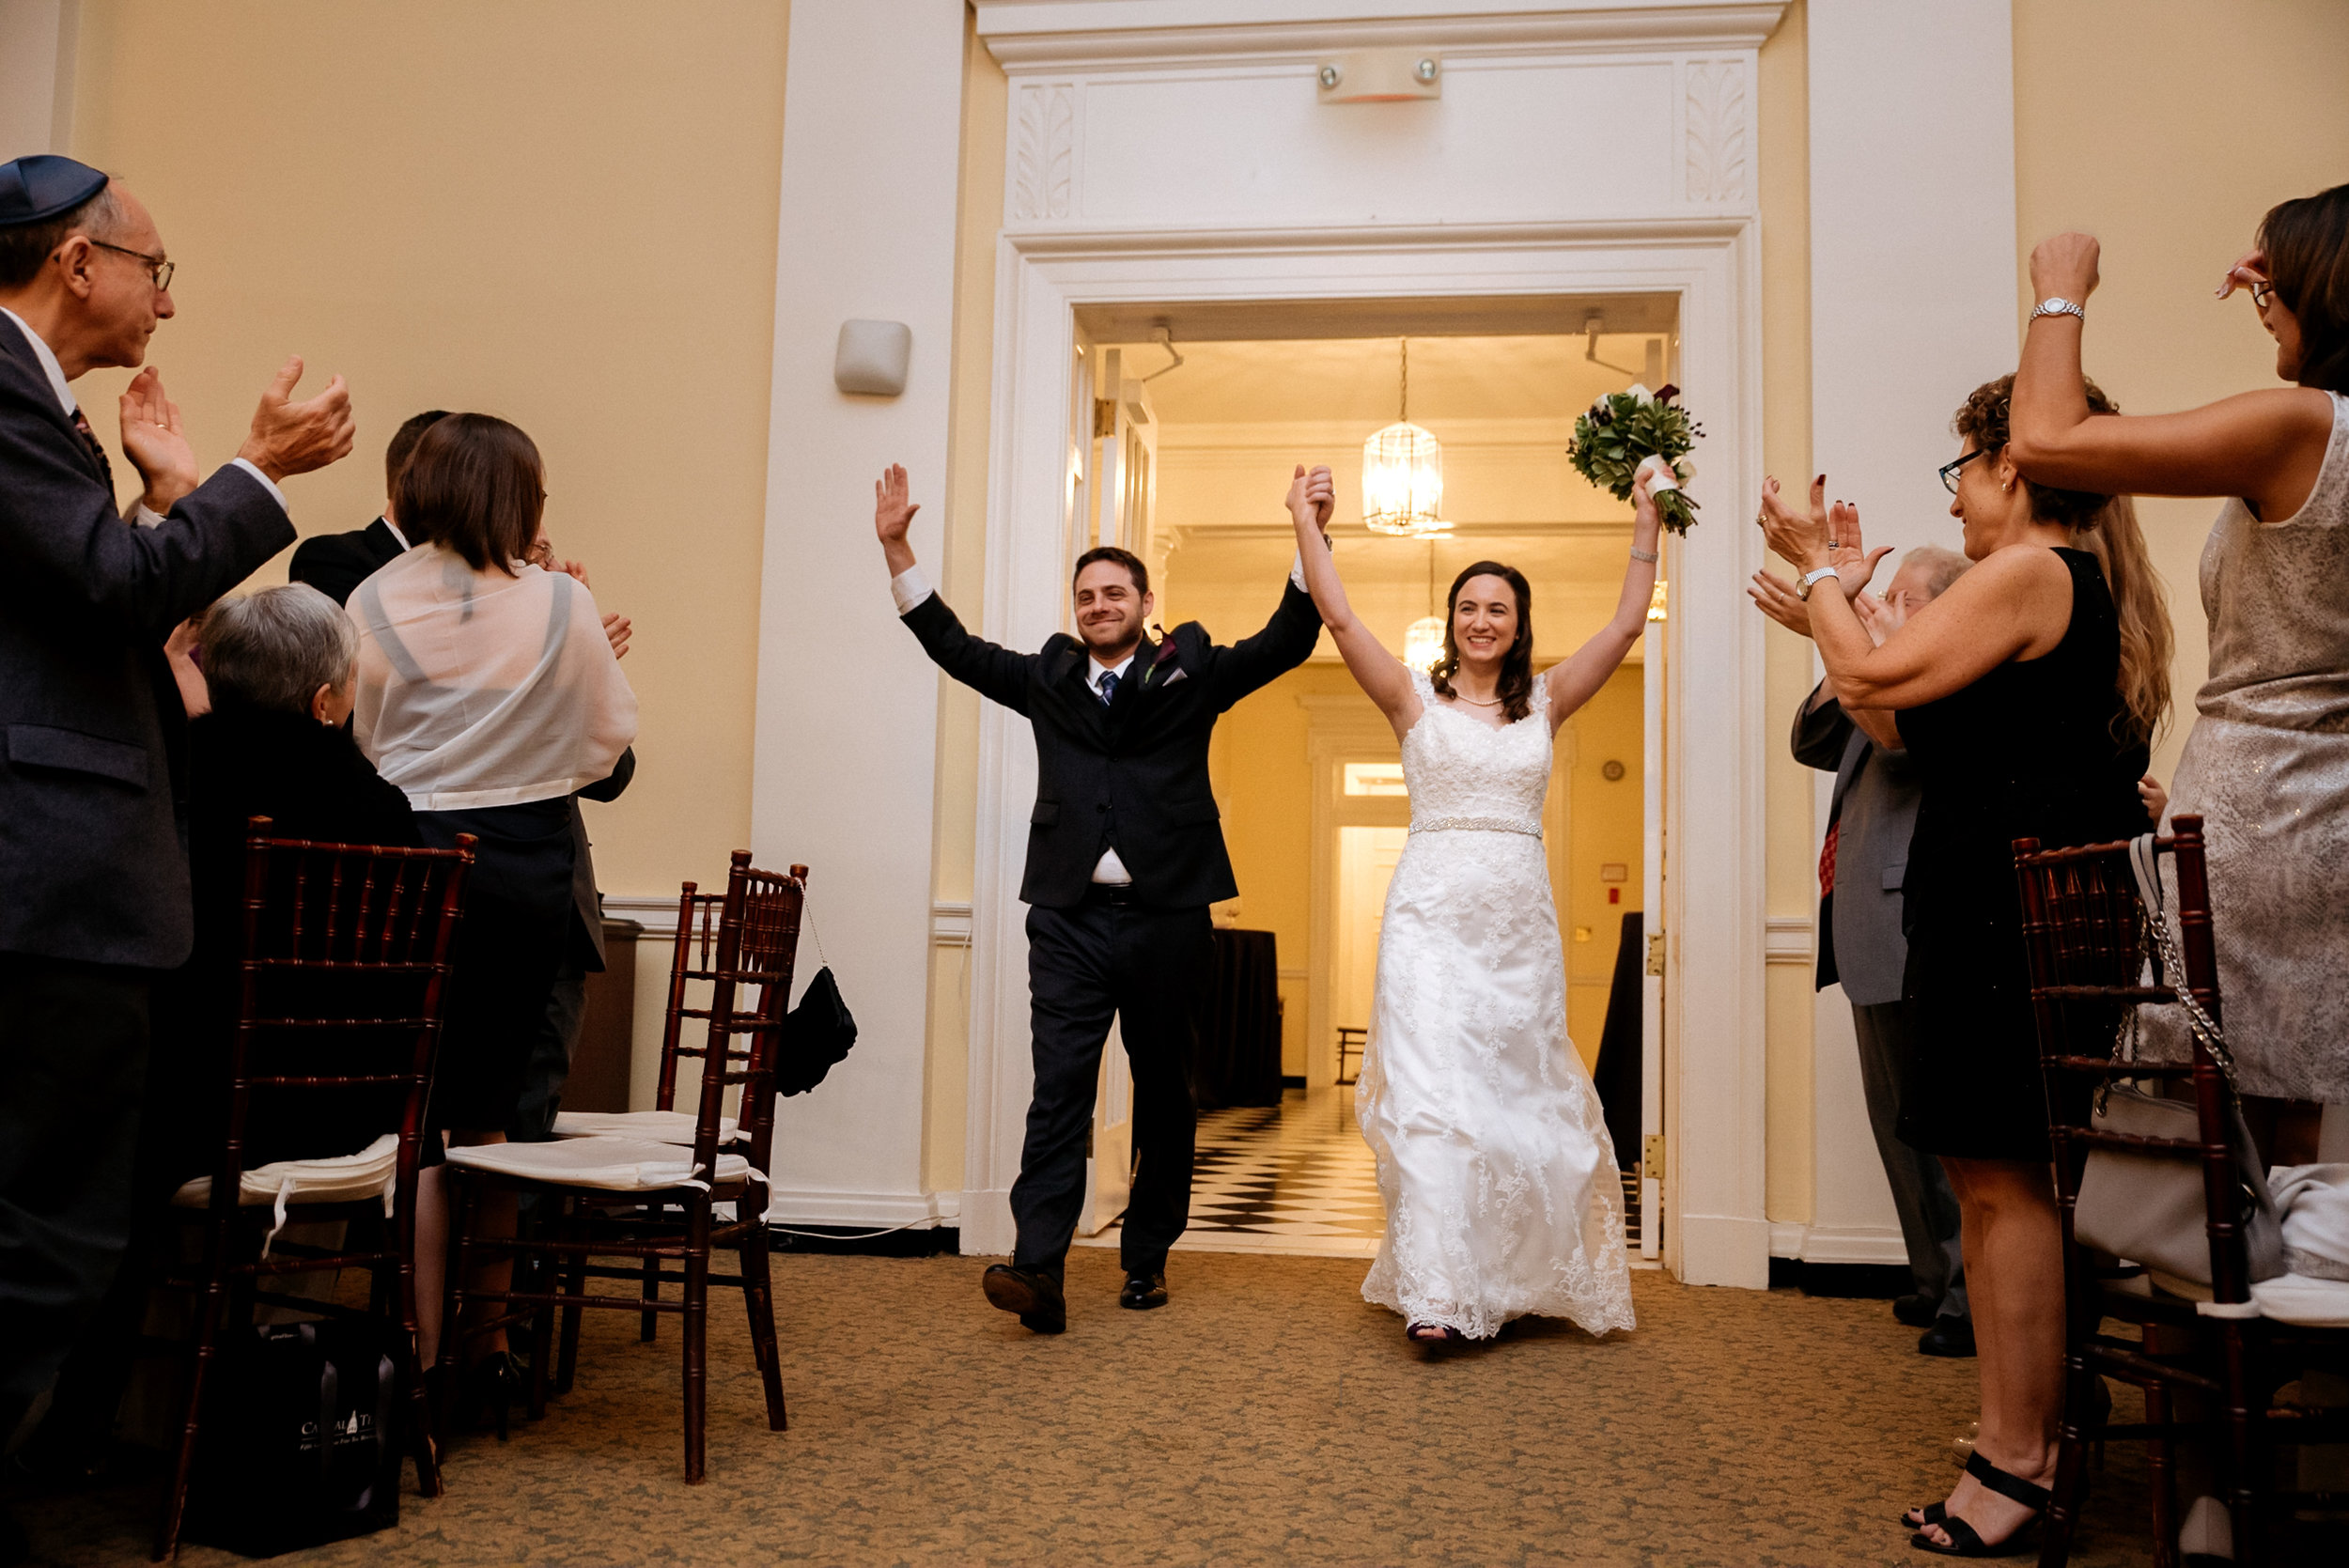 McLean Gardens Ballroom Wedding- Bride and groom entrance